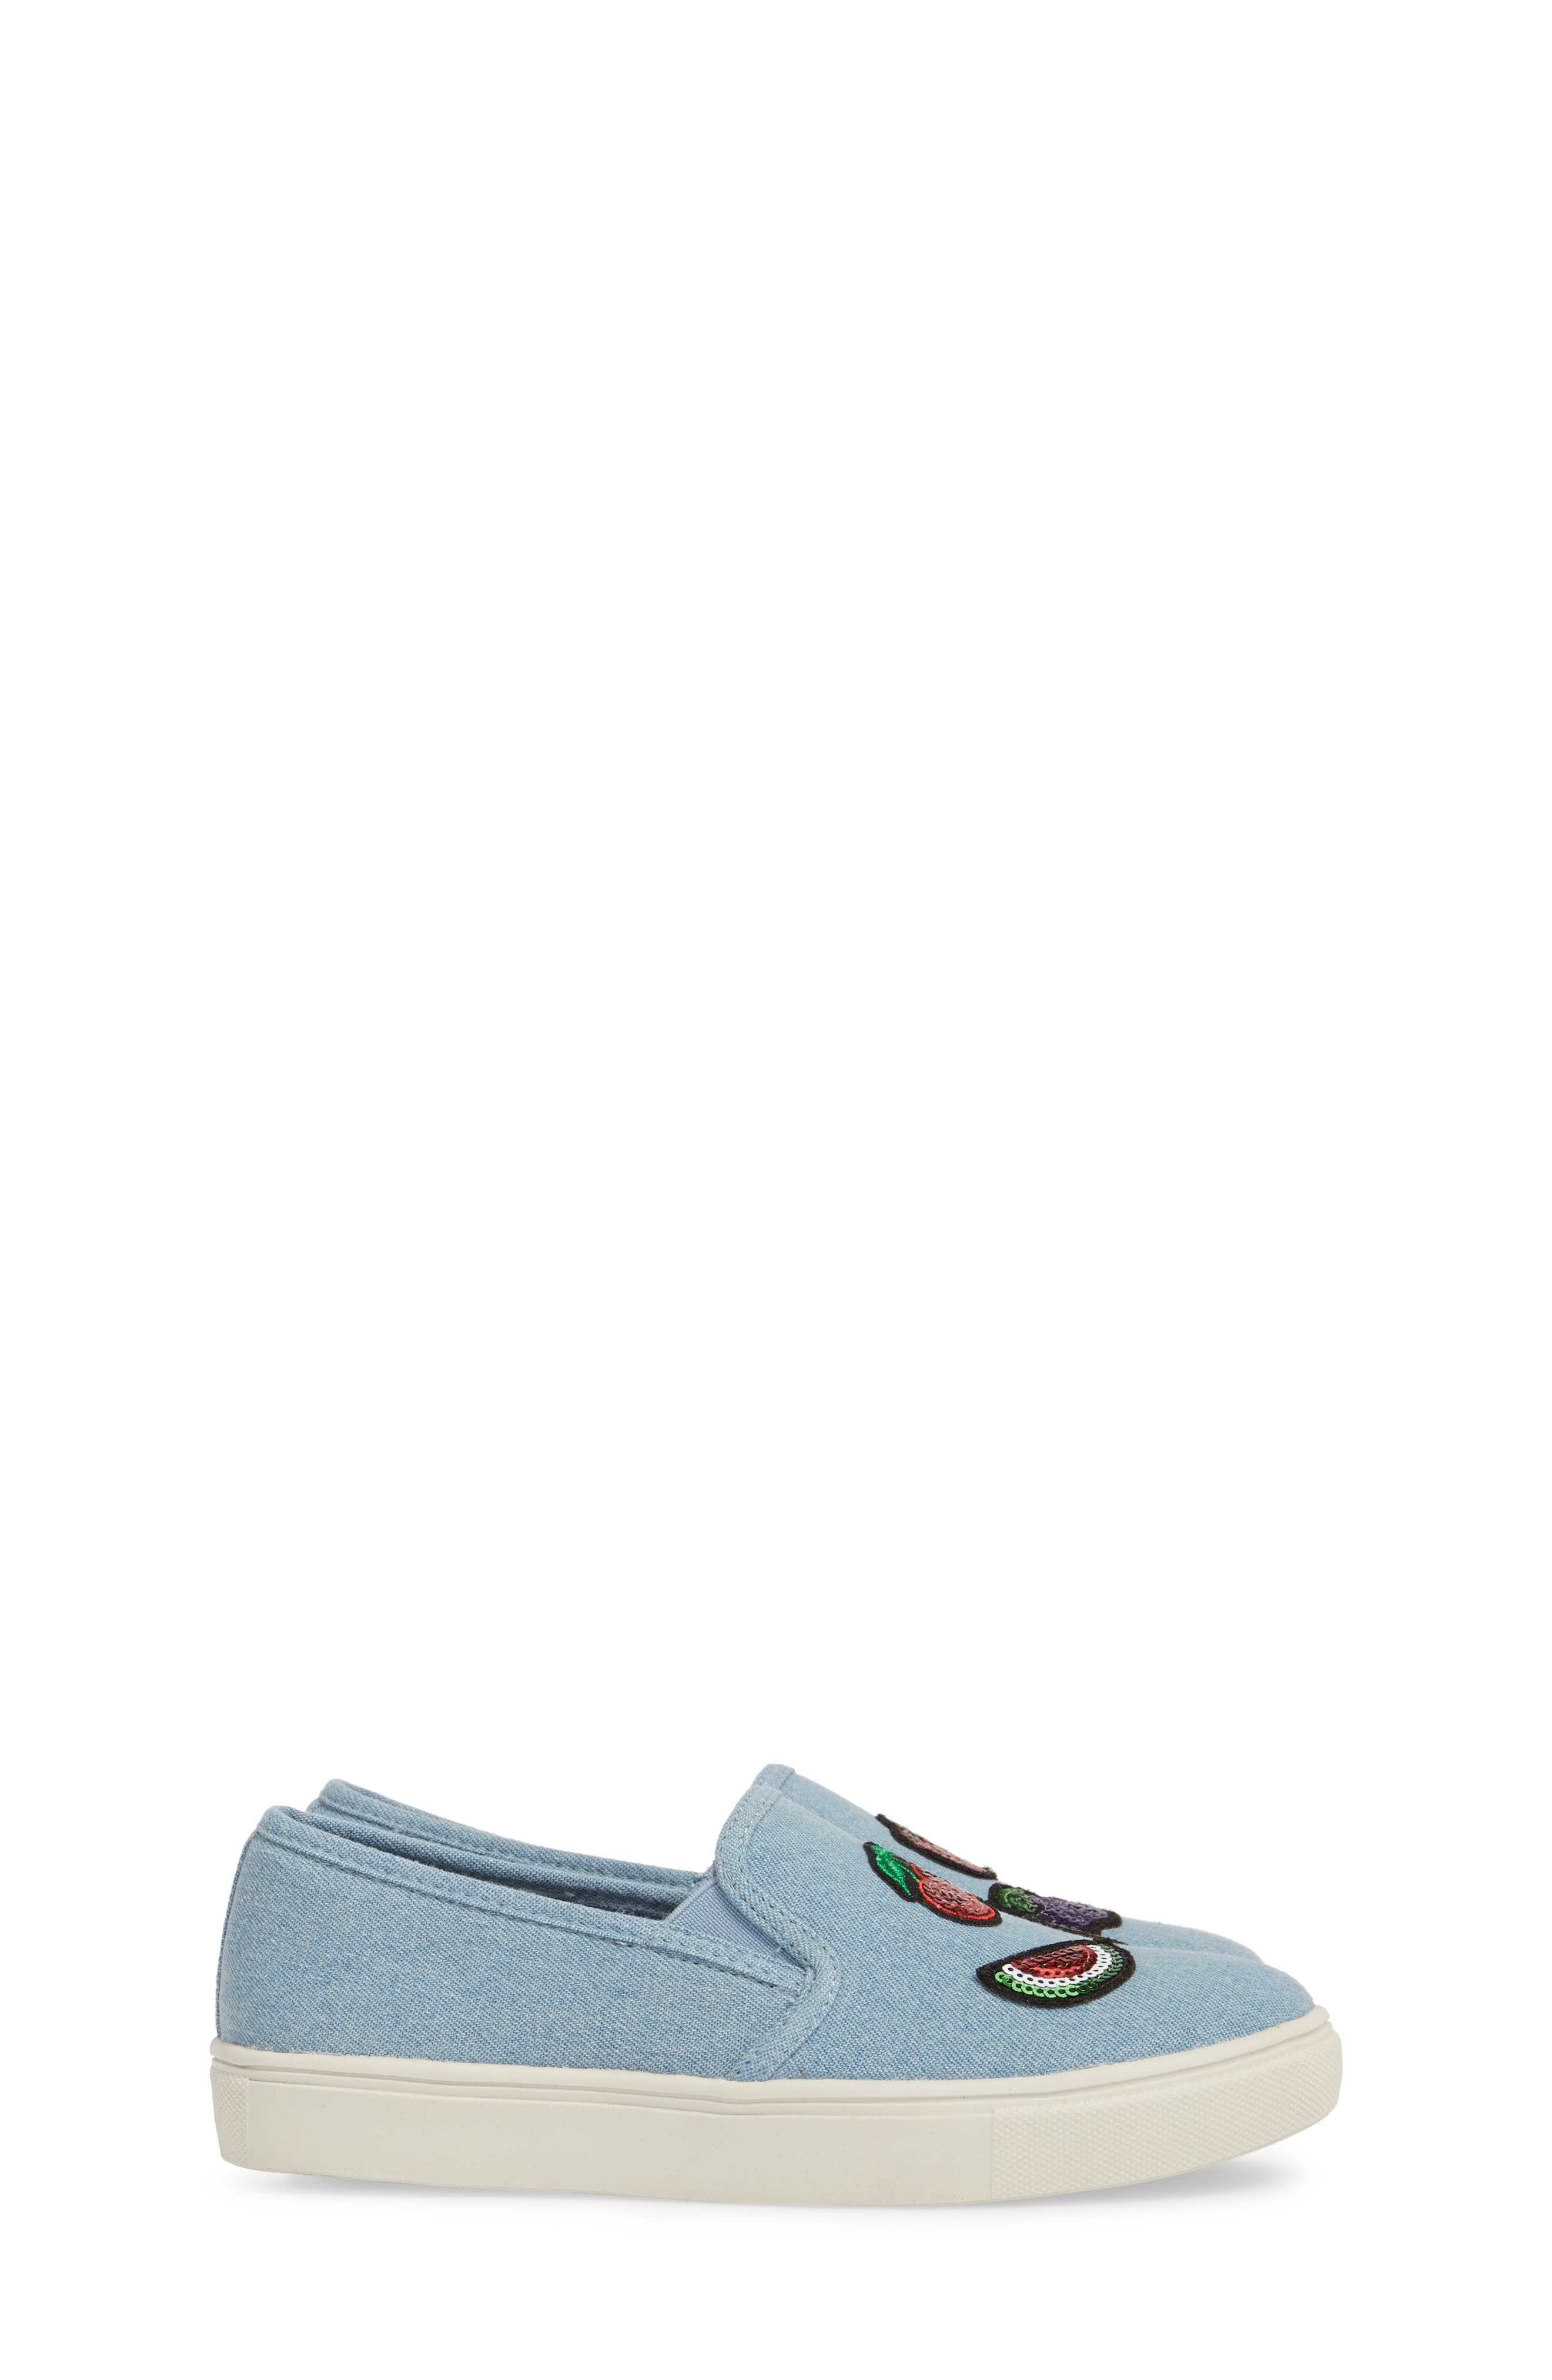 Twinny Snack Appliqué Sneaker,                             Alternate thumbnail 4, color,                             Chambray Fabric